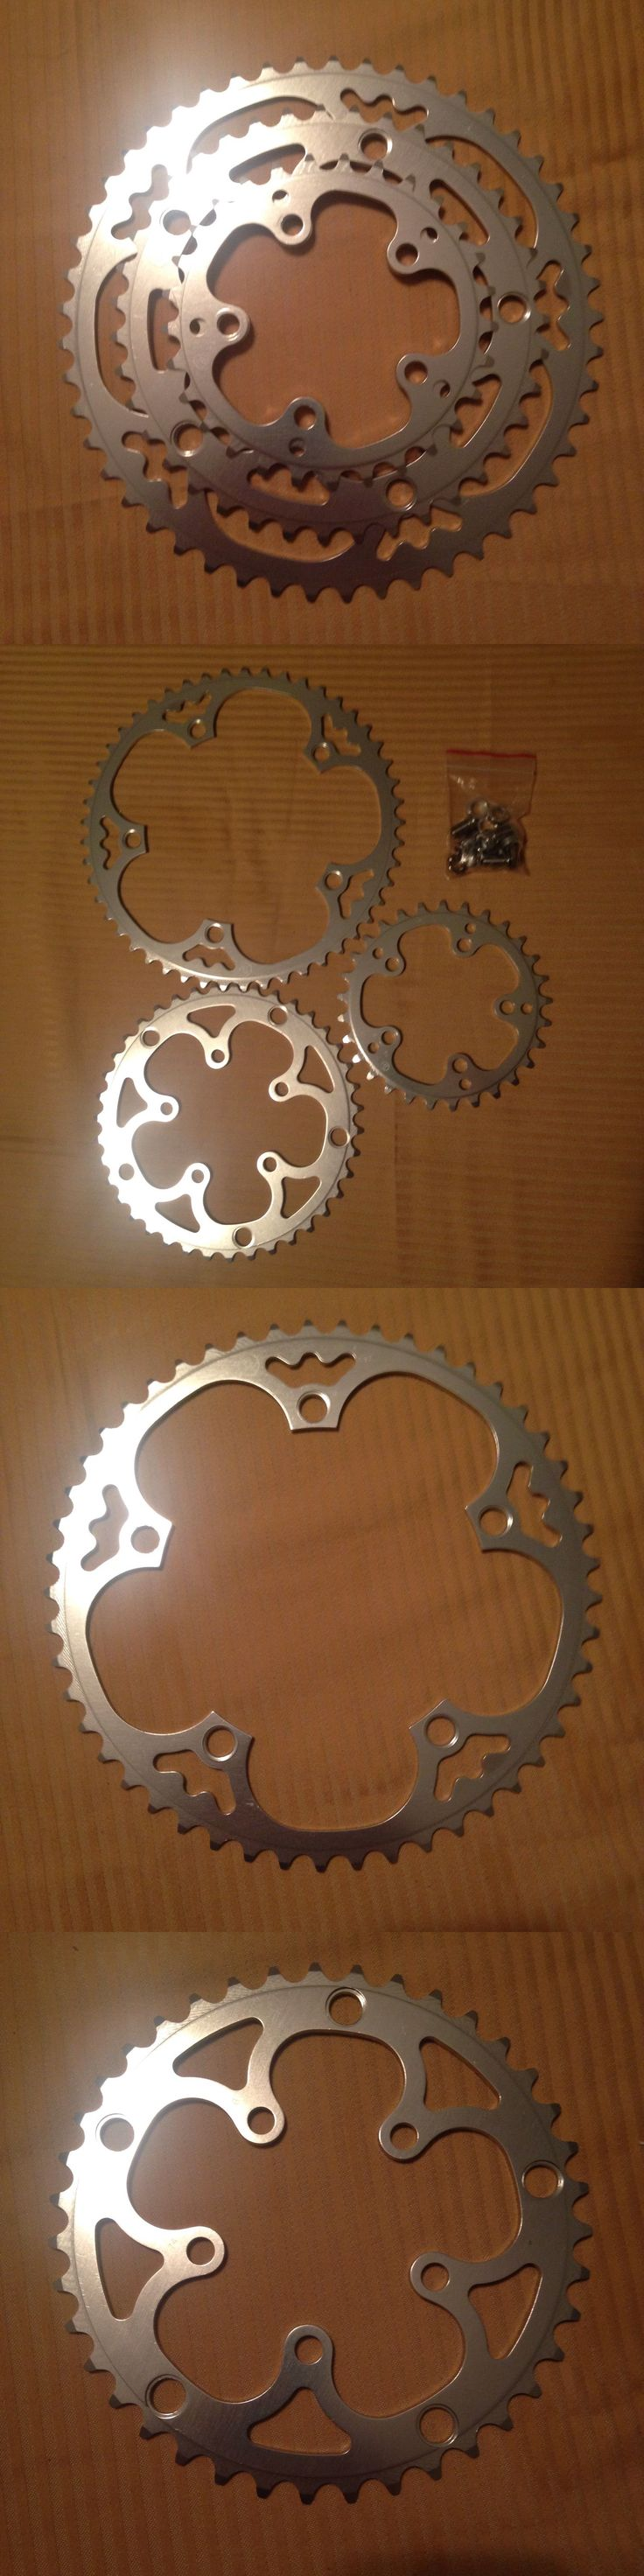 Chainrings and BMX Sprockets 177811: Triplizer Chainring Set - 49 39 29 - Triple Cranks - Campy Campagnolo 135 Bcd -> BUY IT NOW ONLY: $37.99 on eBay!